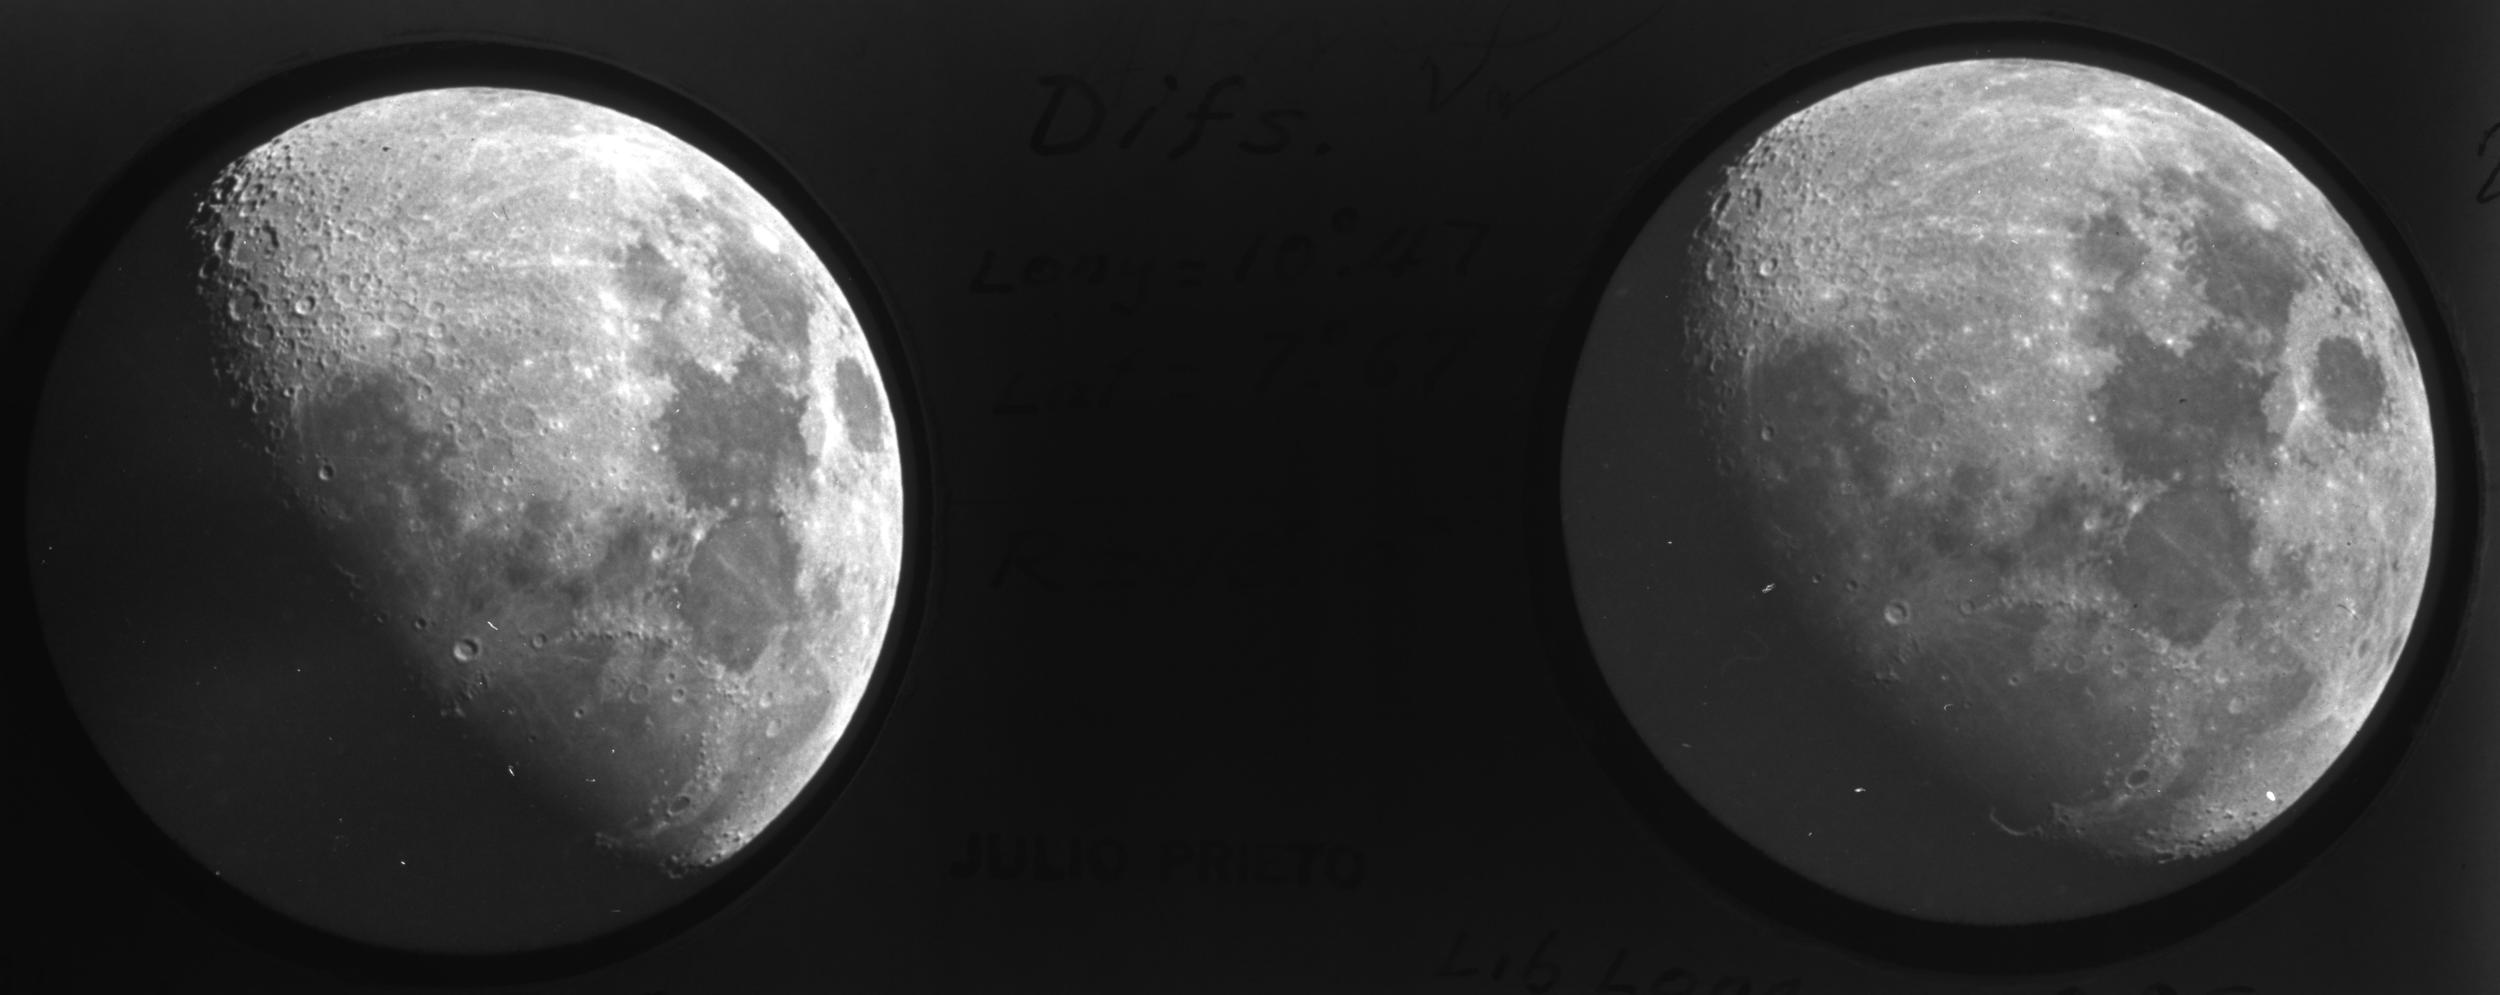 On the slide are two images of the moon that combine to create a nicely stereo image.